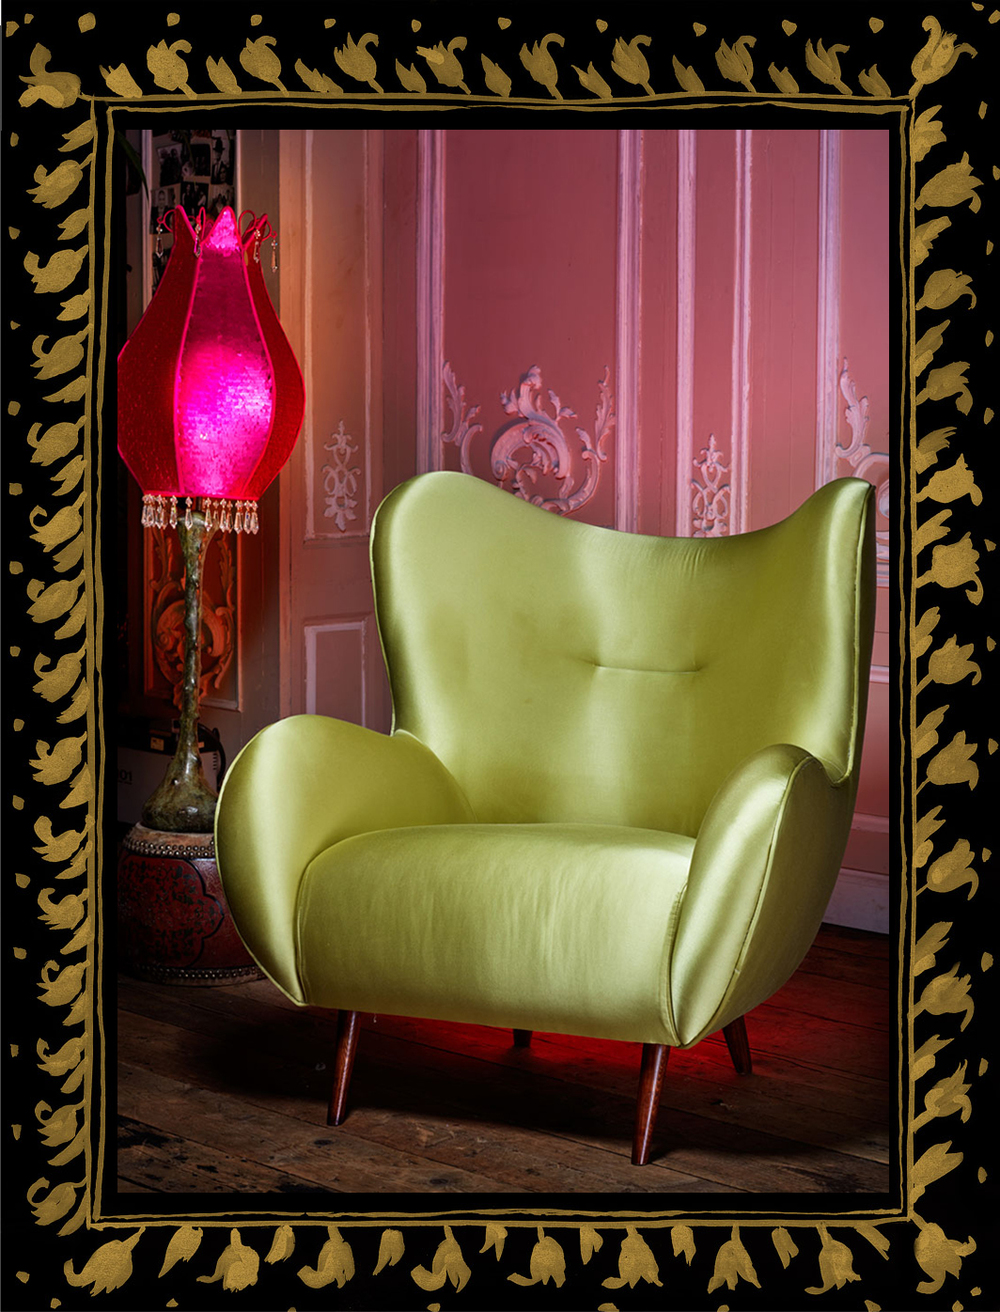 'Fire Monkey' collection, inspired  by 1950's sofa set, shown in light green satin. Also shown Rude lampshade